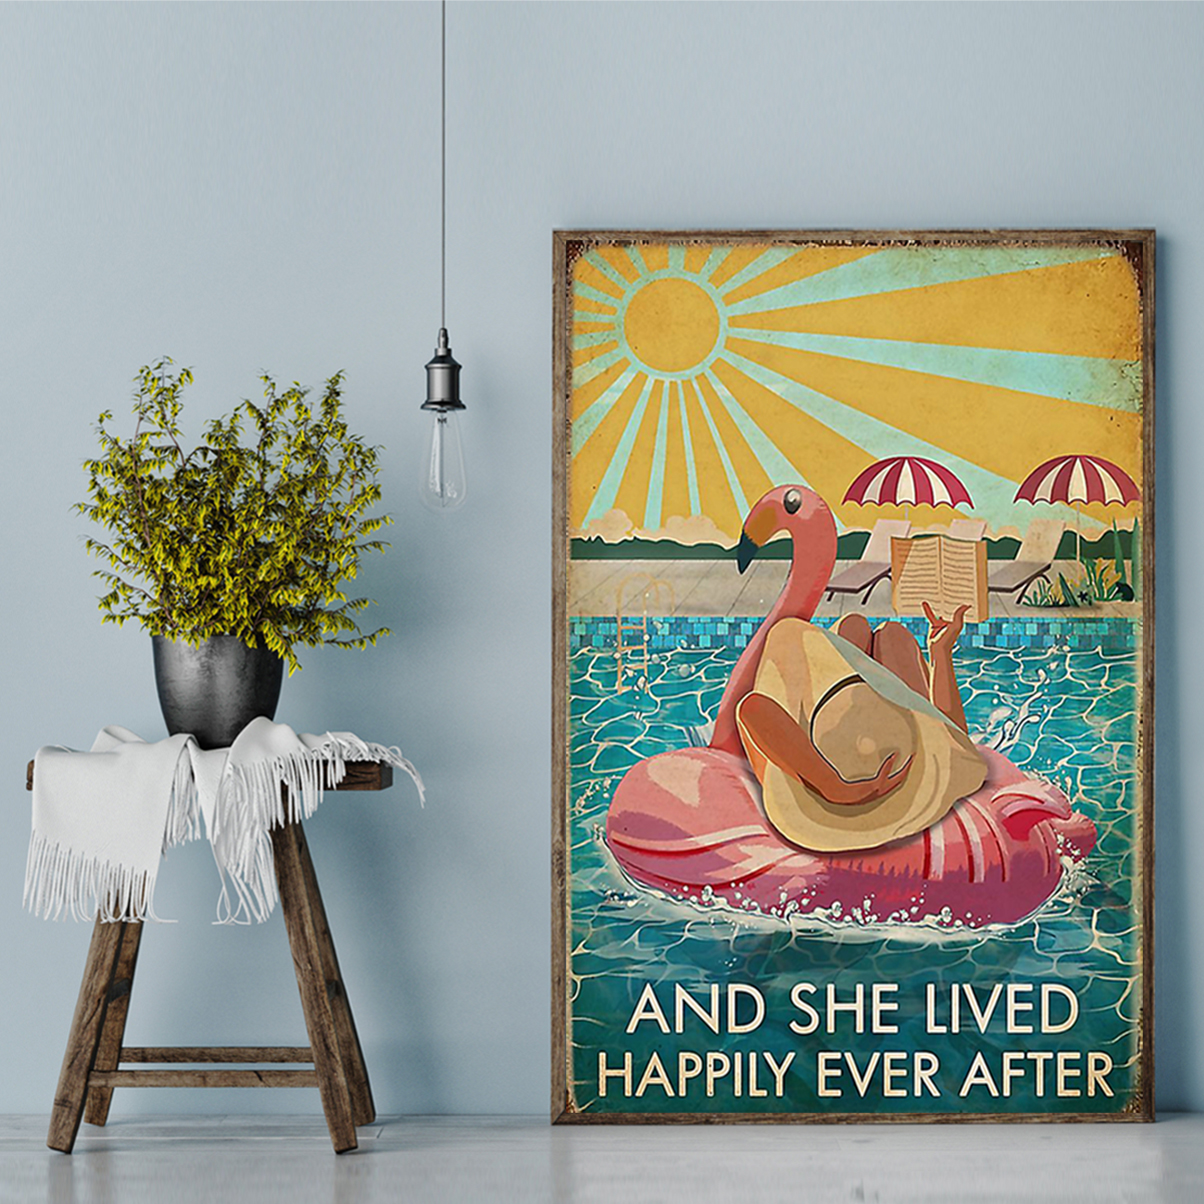 Flamingo and she lived happily ever after book poster A2